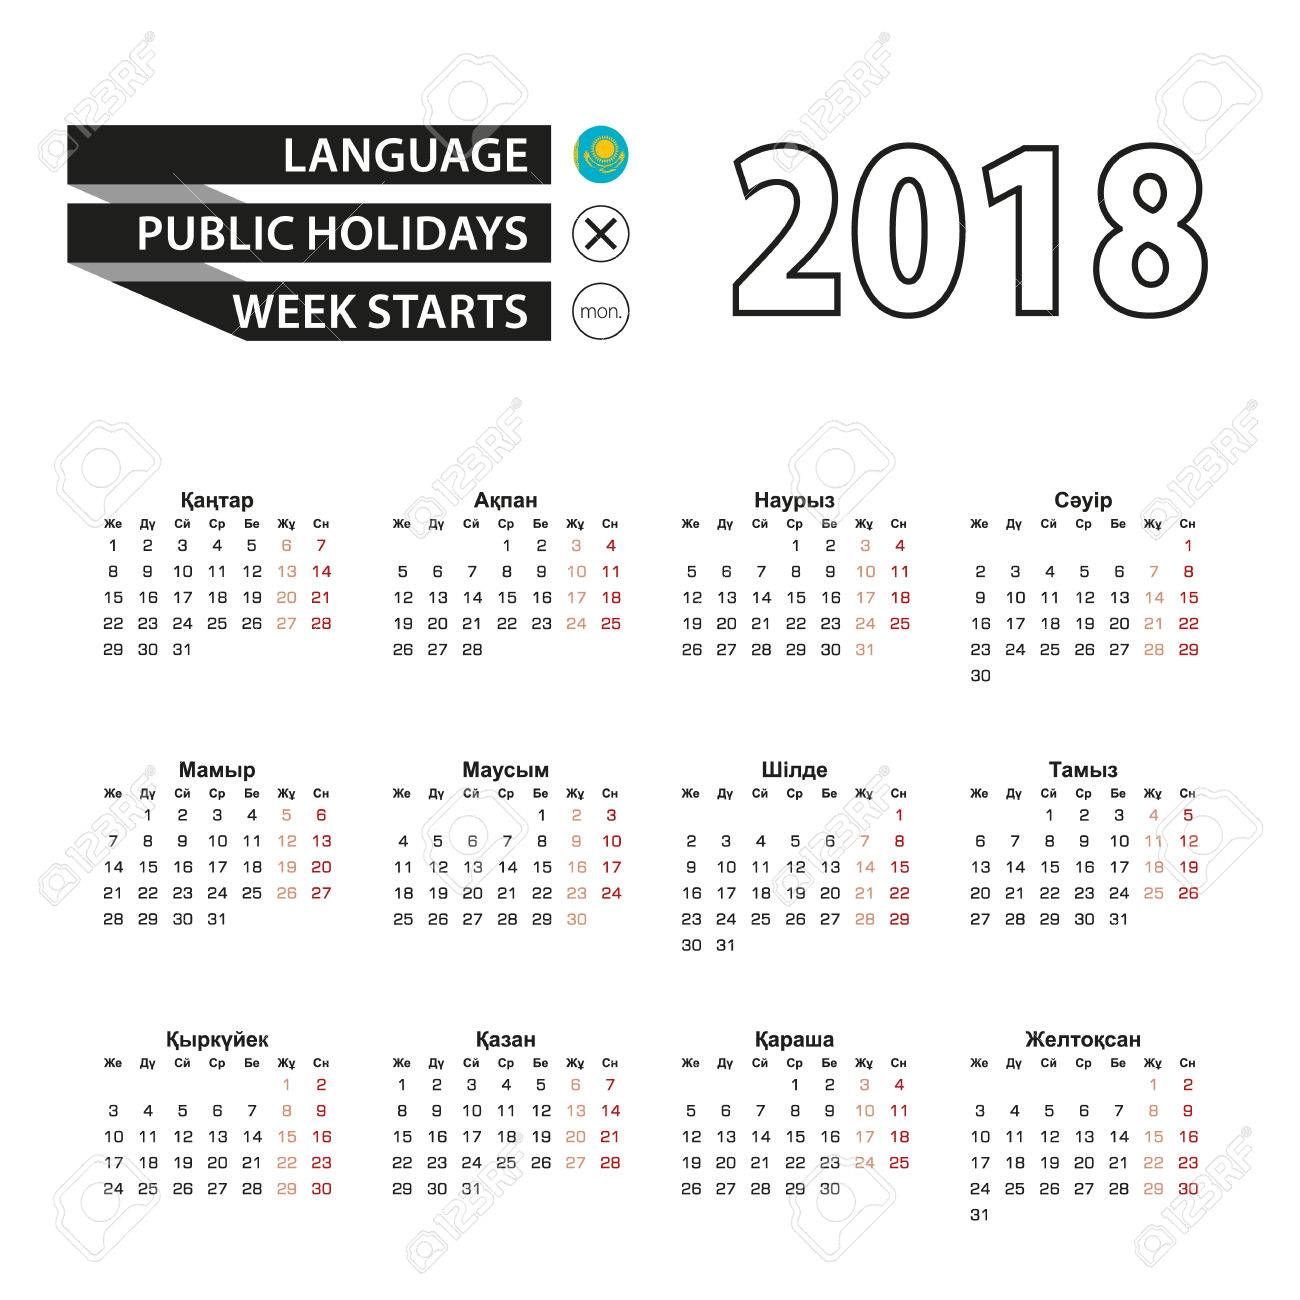 calendar 2018 on kazakh language week starts from monday simple calendar vector illustration